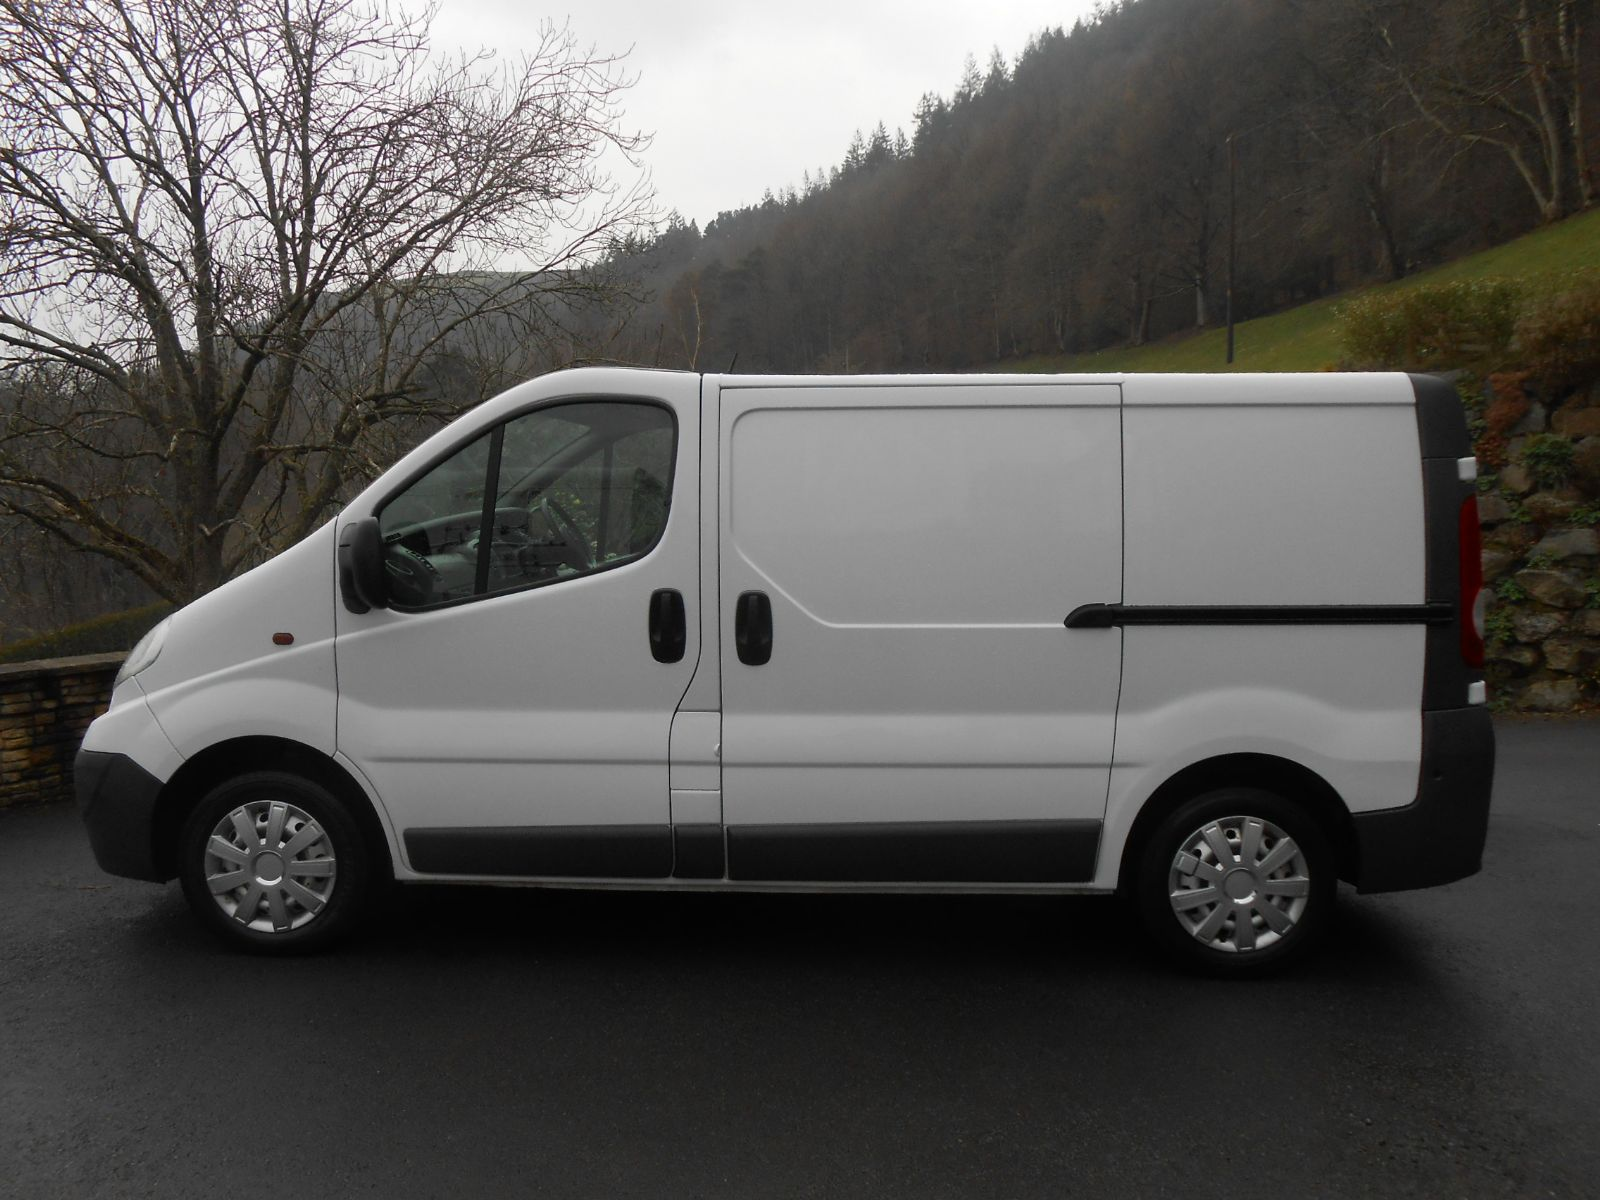 Personal Contract Hire >> Vauxhall Vivaro 2.0 CDTi 115 2700 SWB car for sale Llanidloes Powys Mid Wales Kevin Jones Cars ...